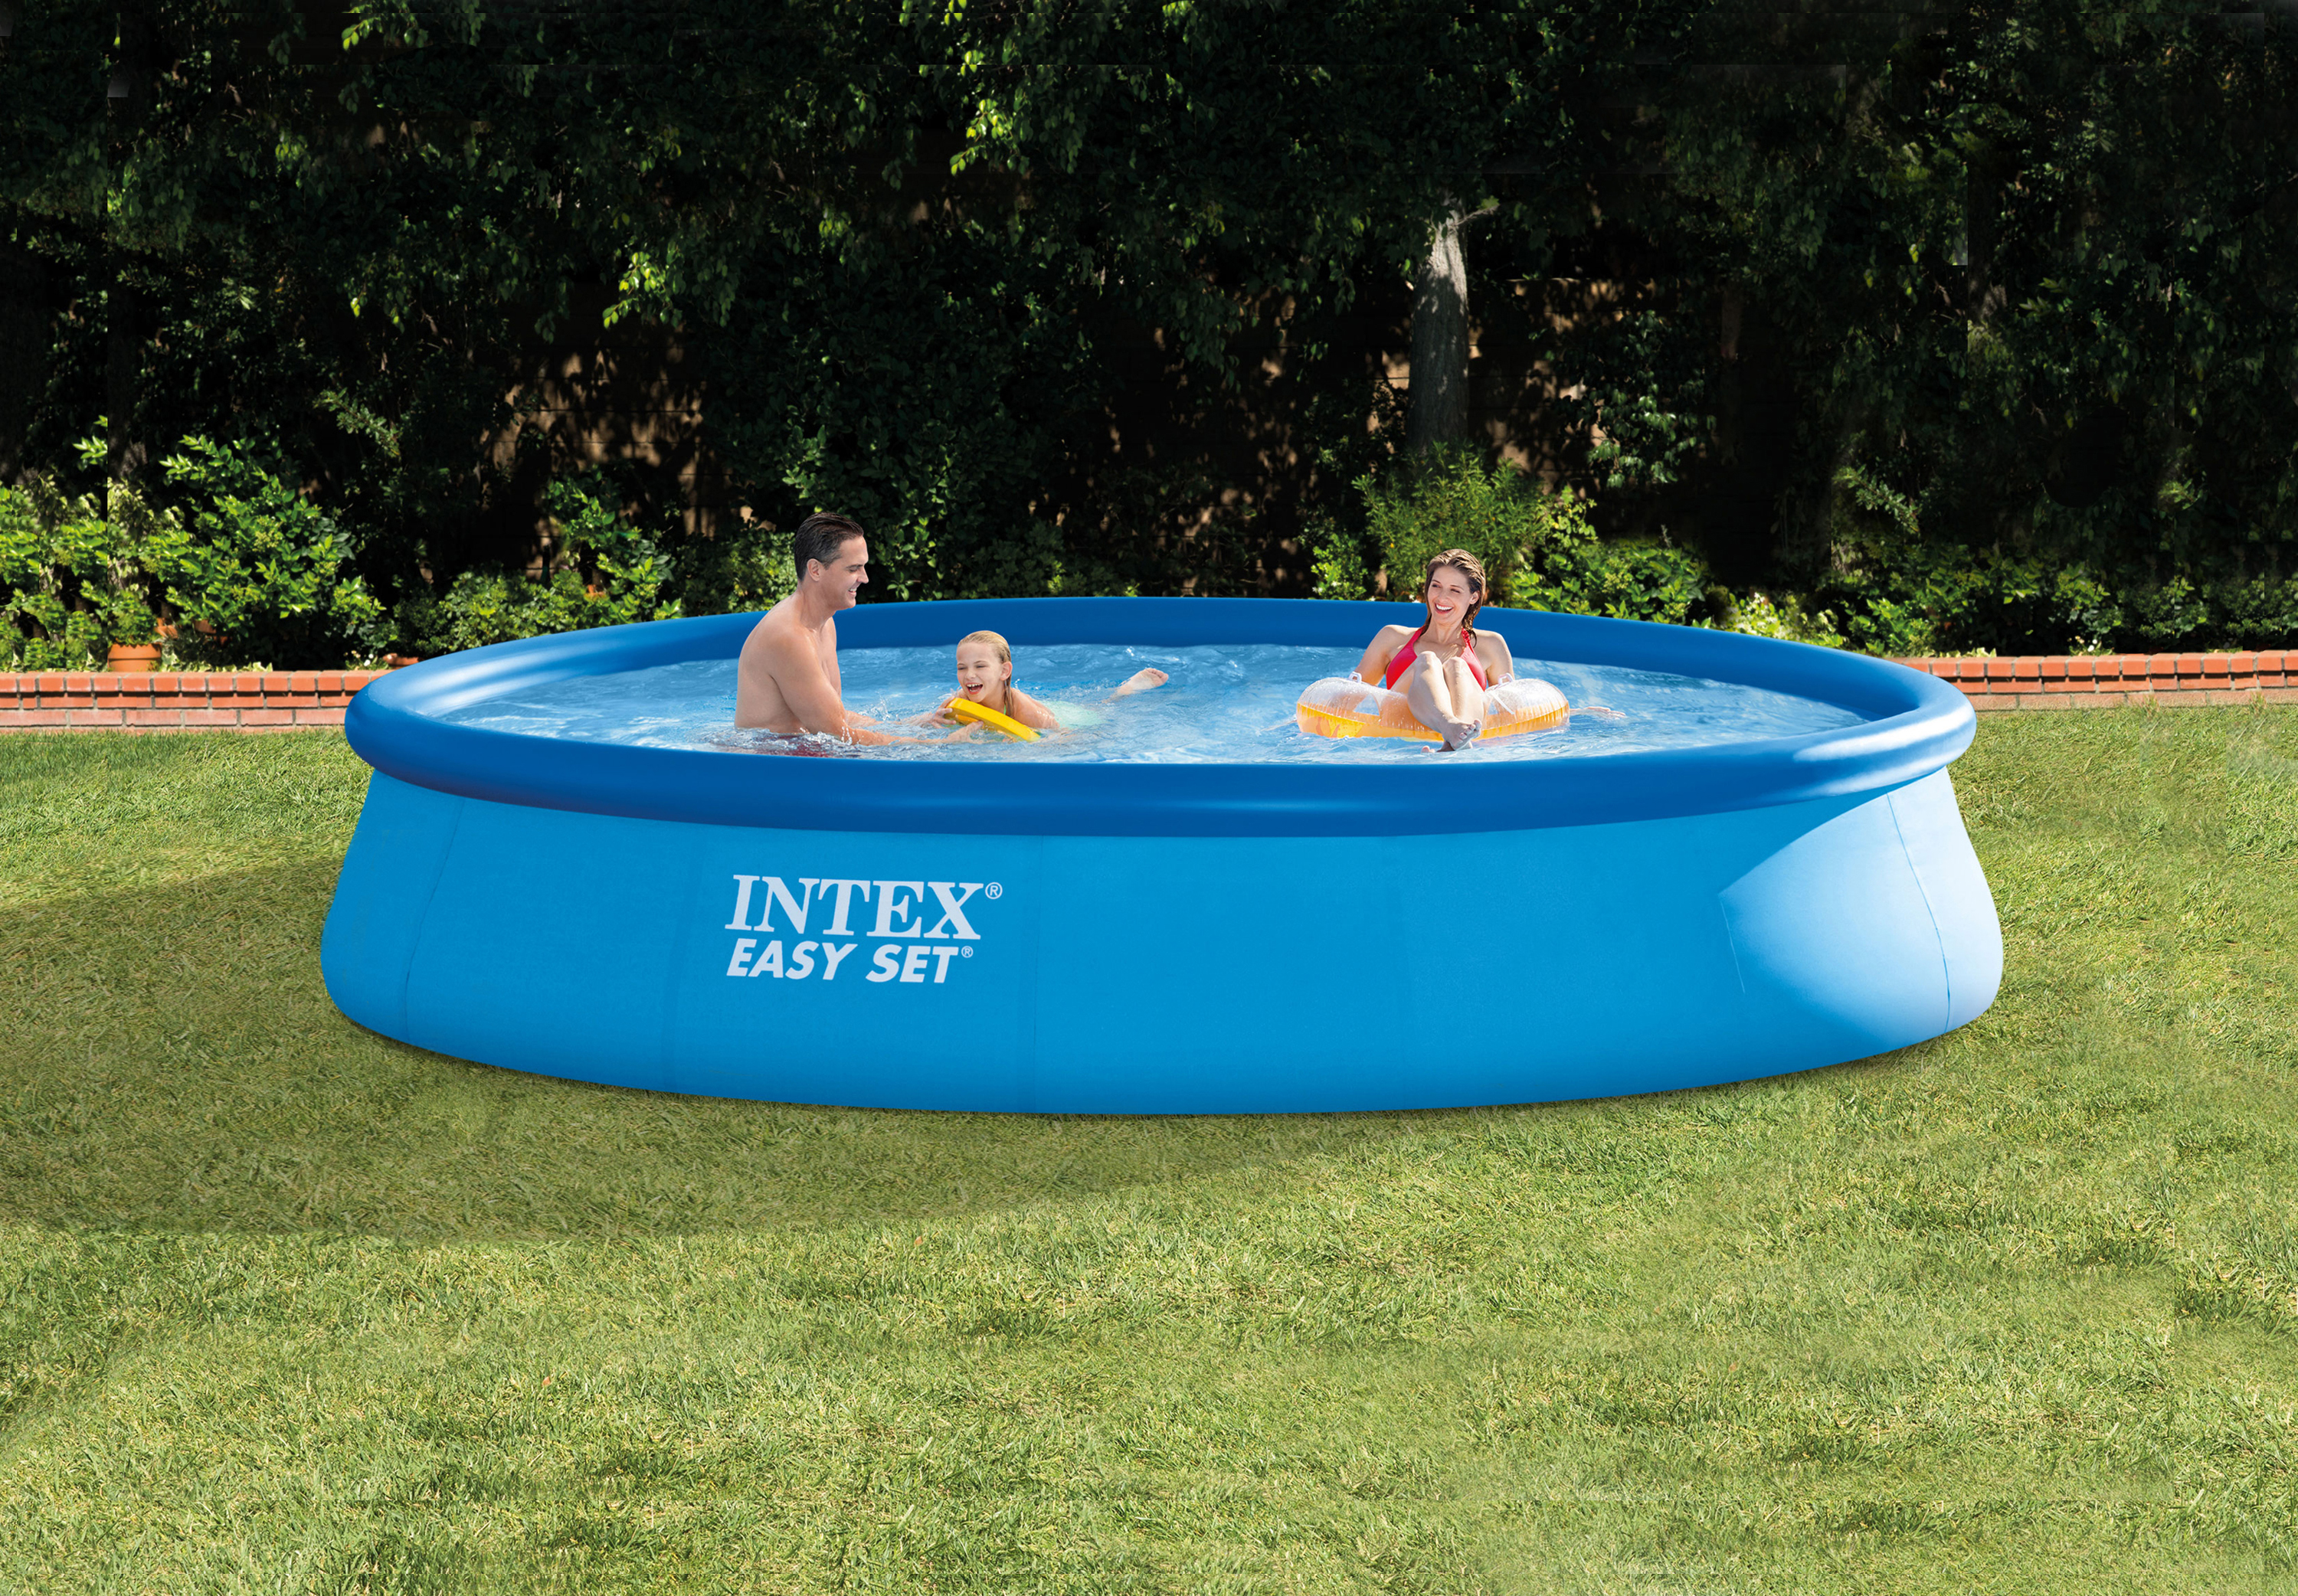 Intex 13 39 x 32 easy set above ground swimming pool kit for Intex pool 120 hoch